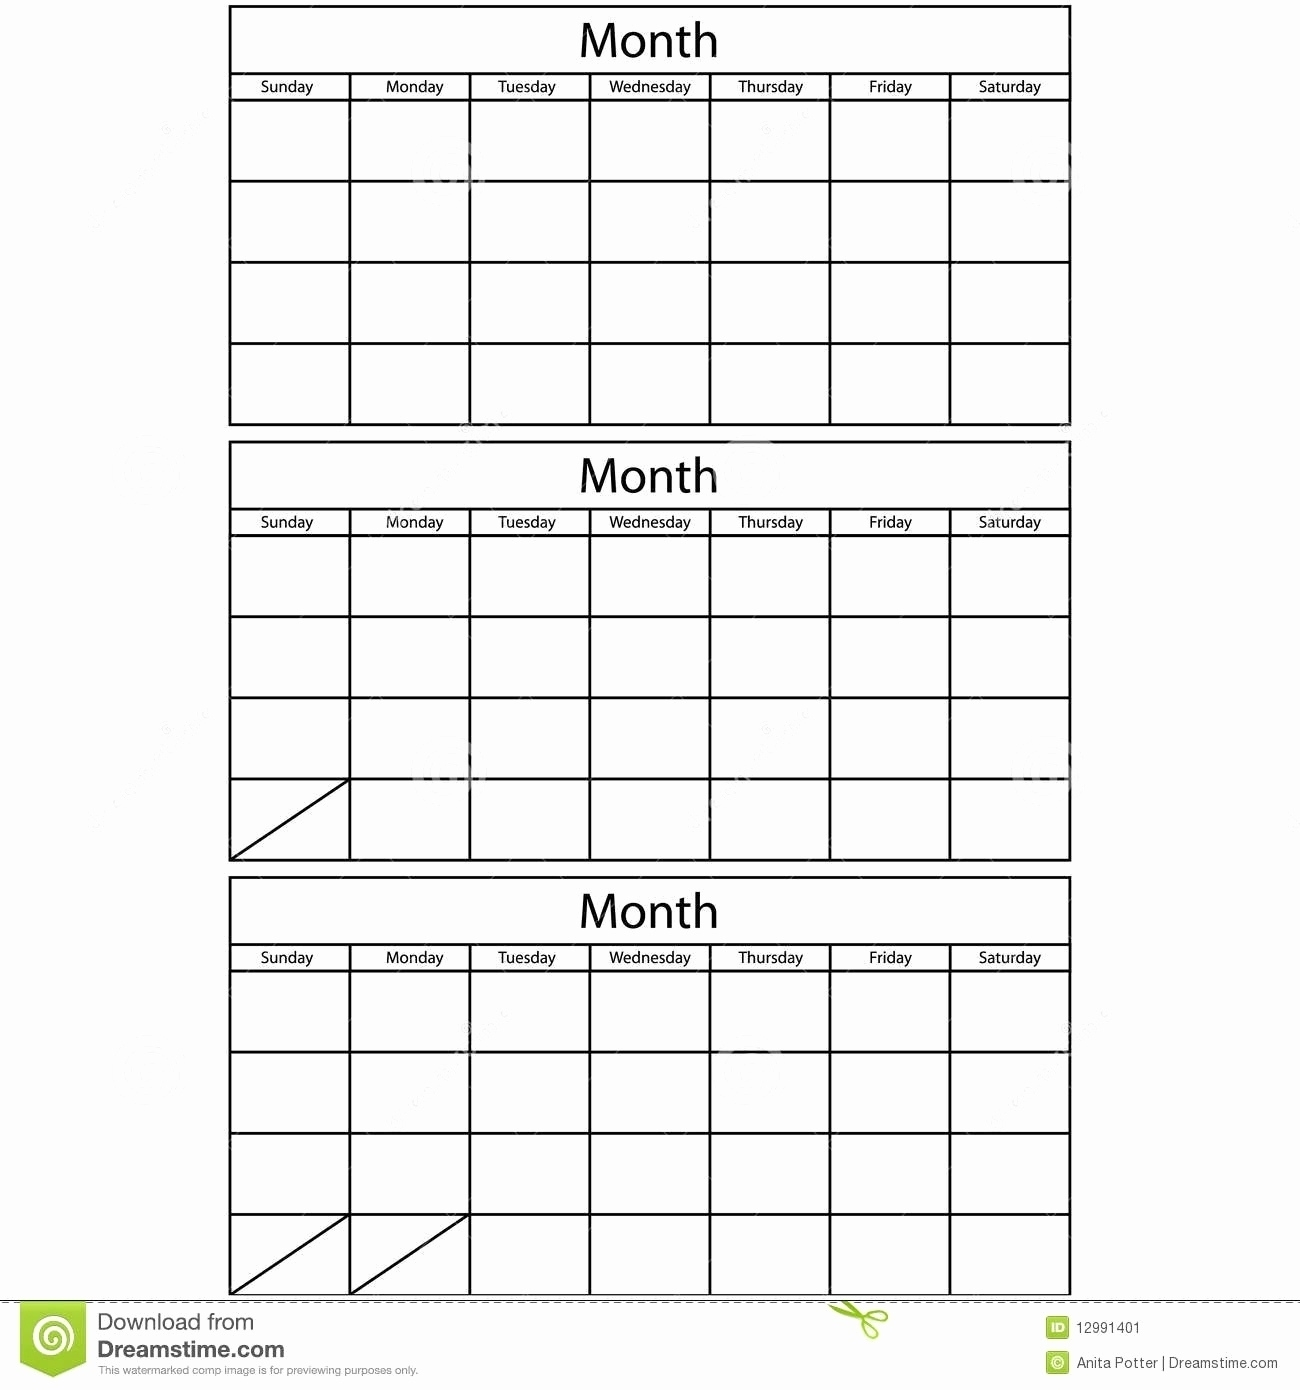 Blank Monthly Lanner Template Calendars To Rint Free Excel Download inside Free Blank Monthly Planner Templates